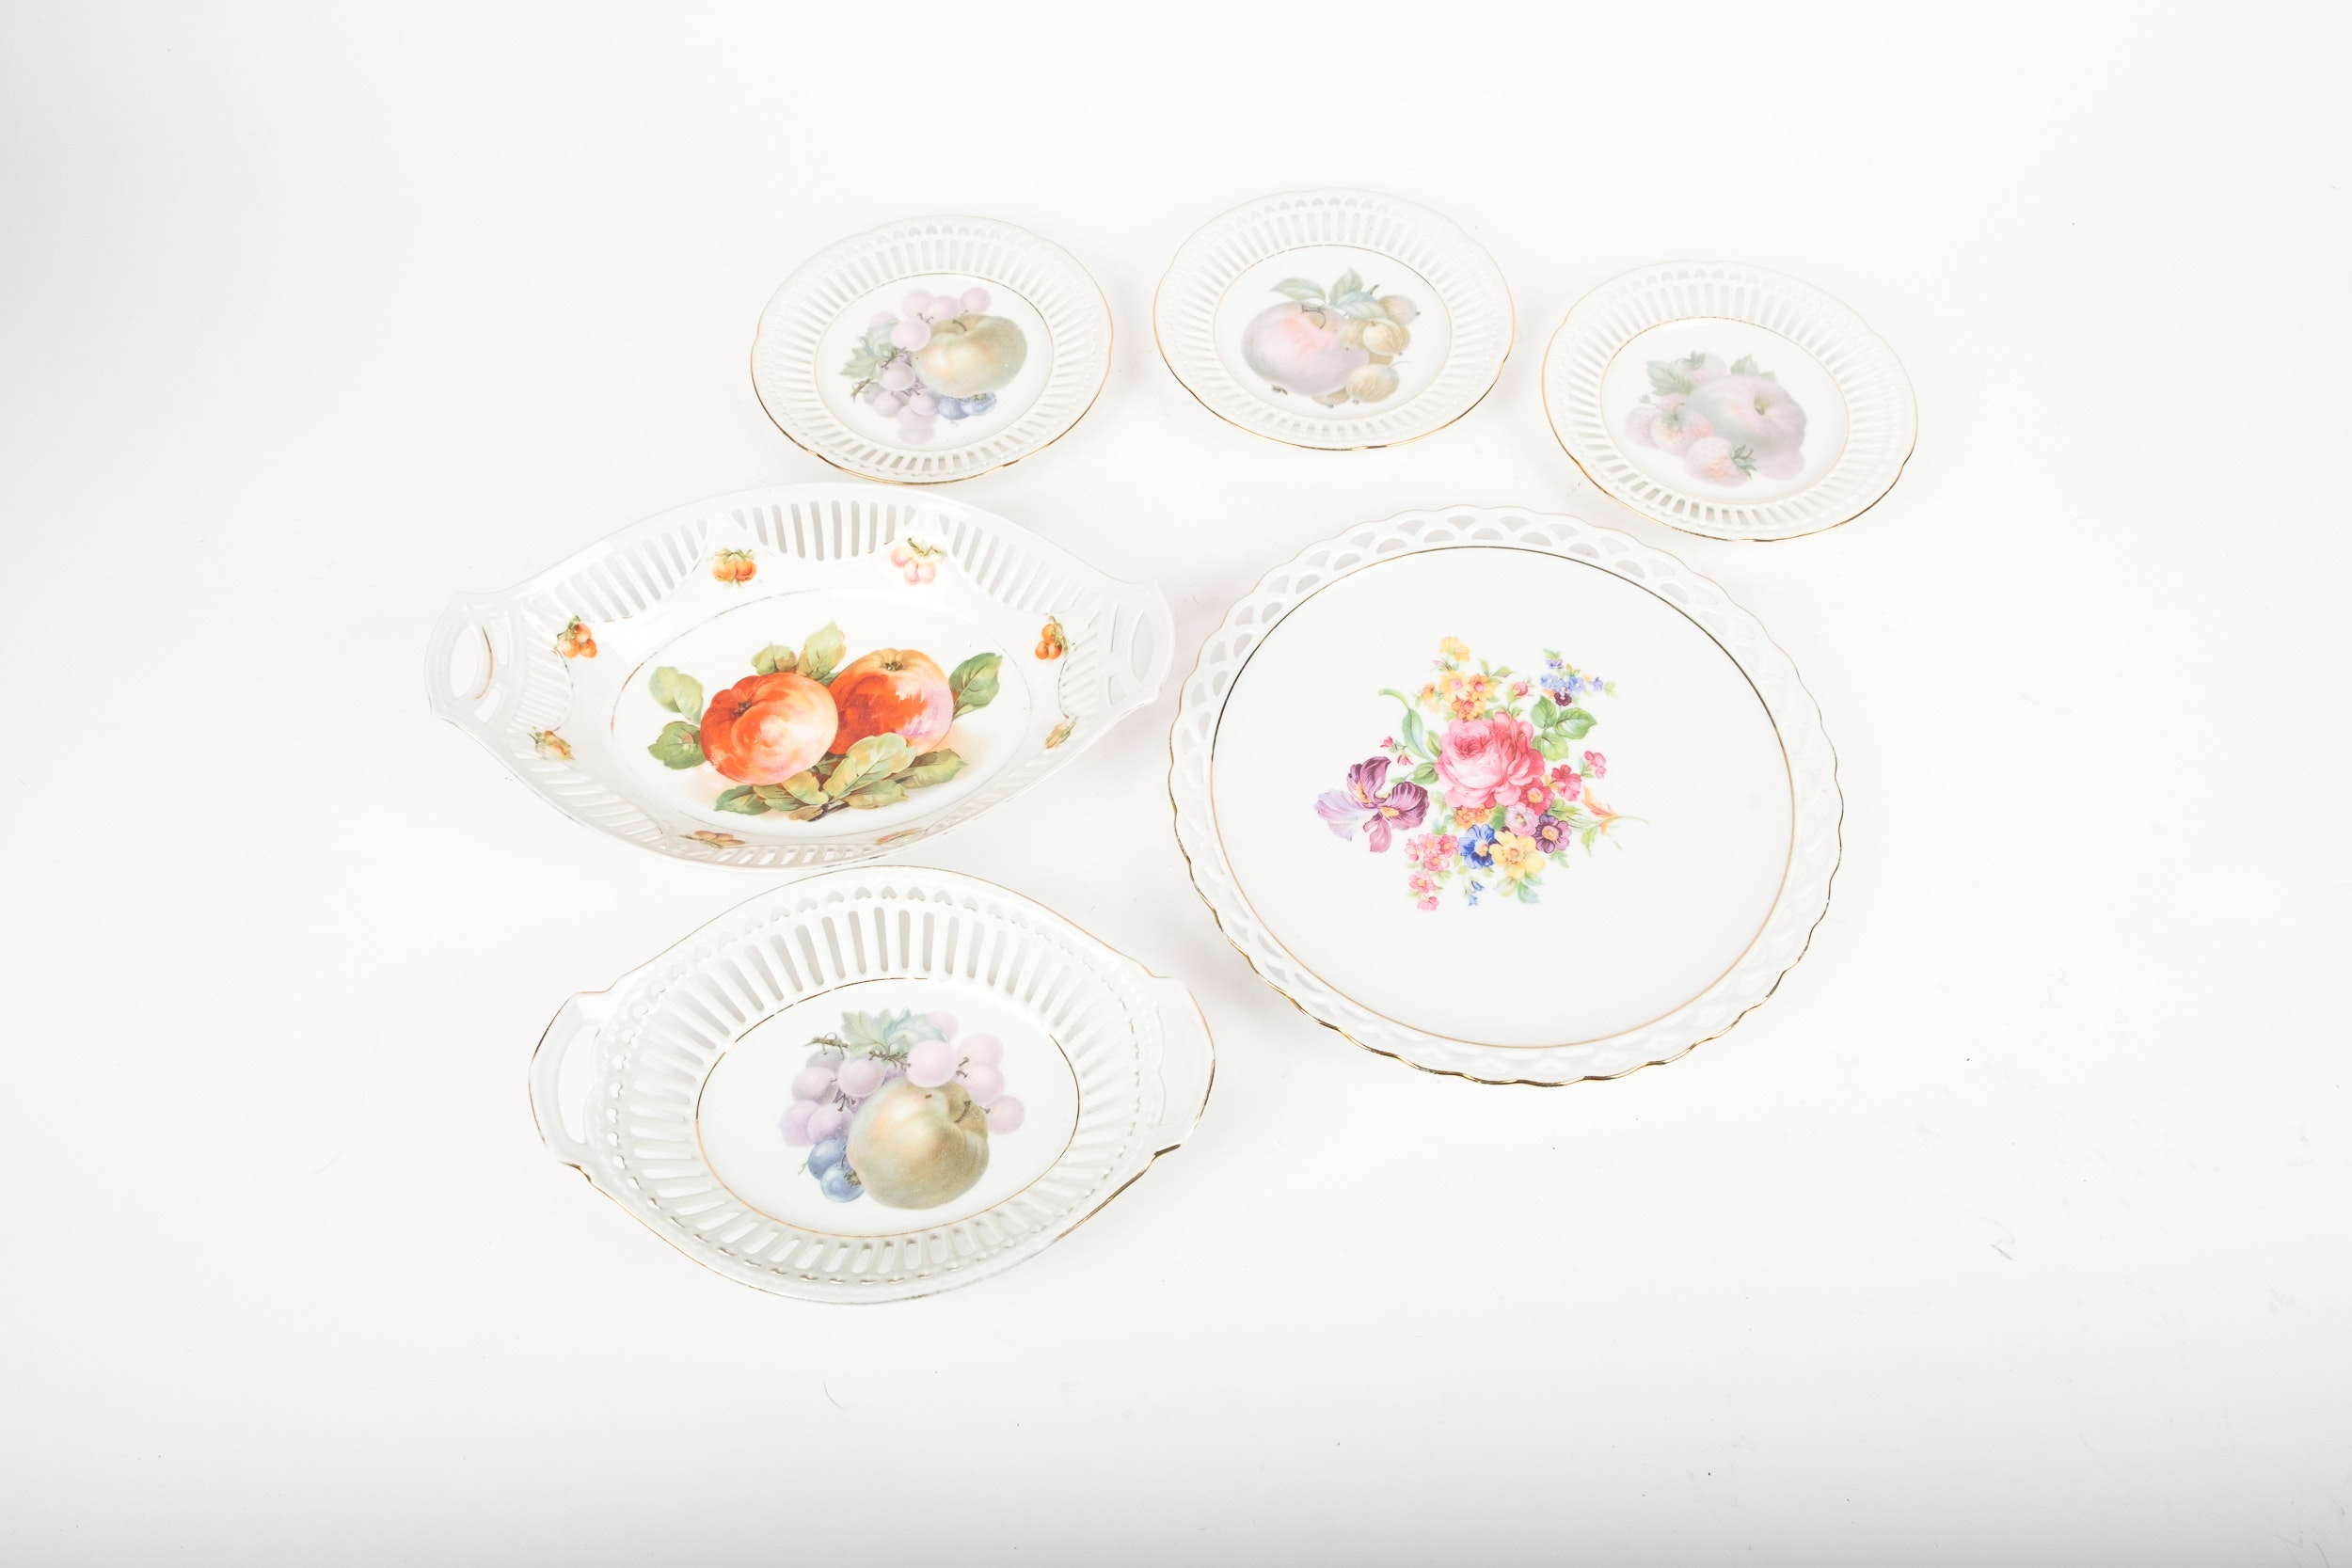 Vintage Fruit and Flower Tableware with Pierced Rims Including Winterling